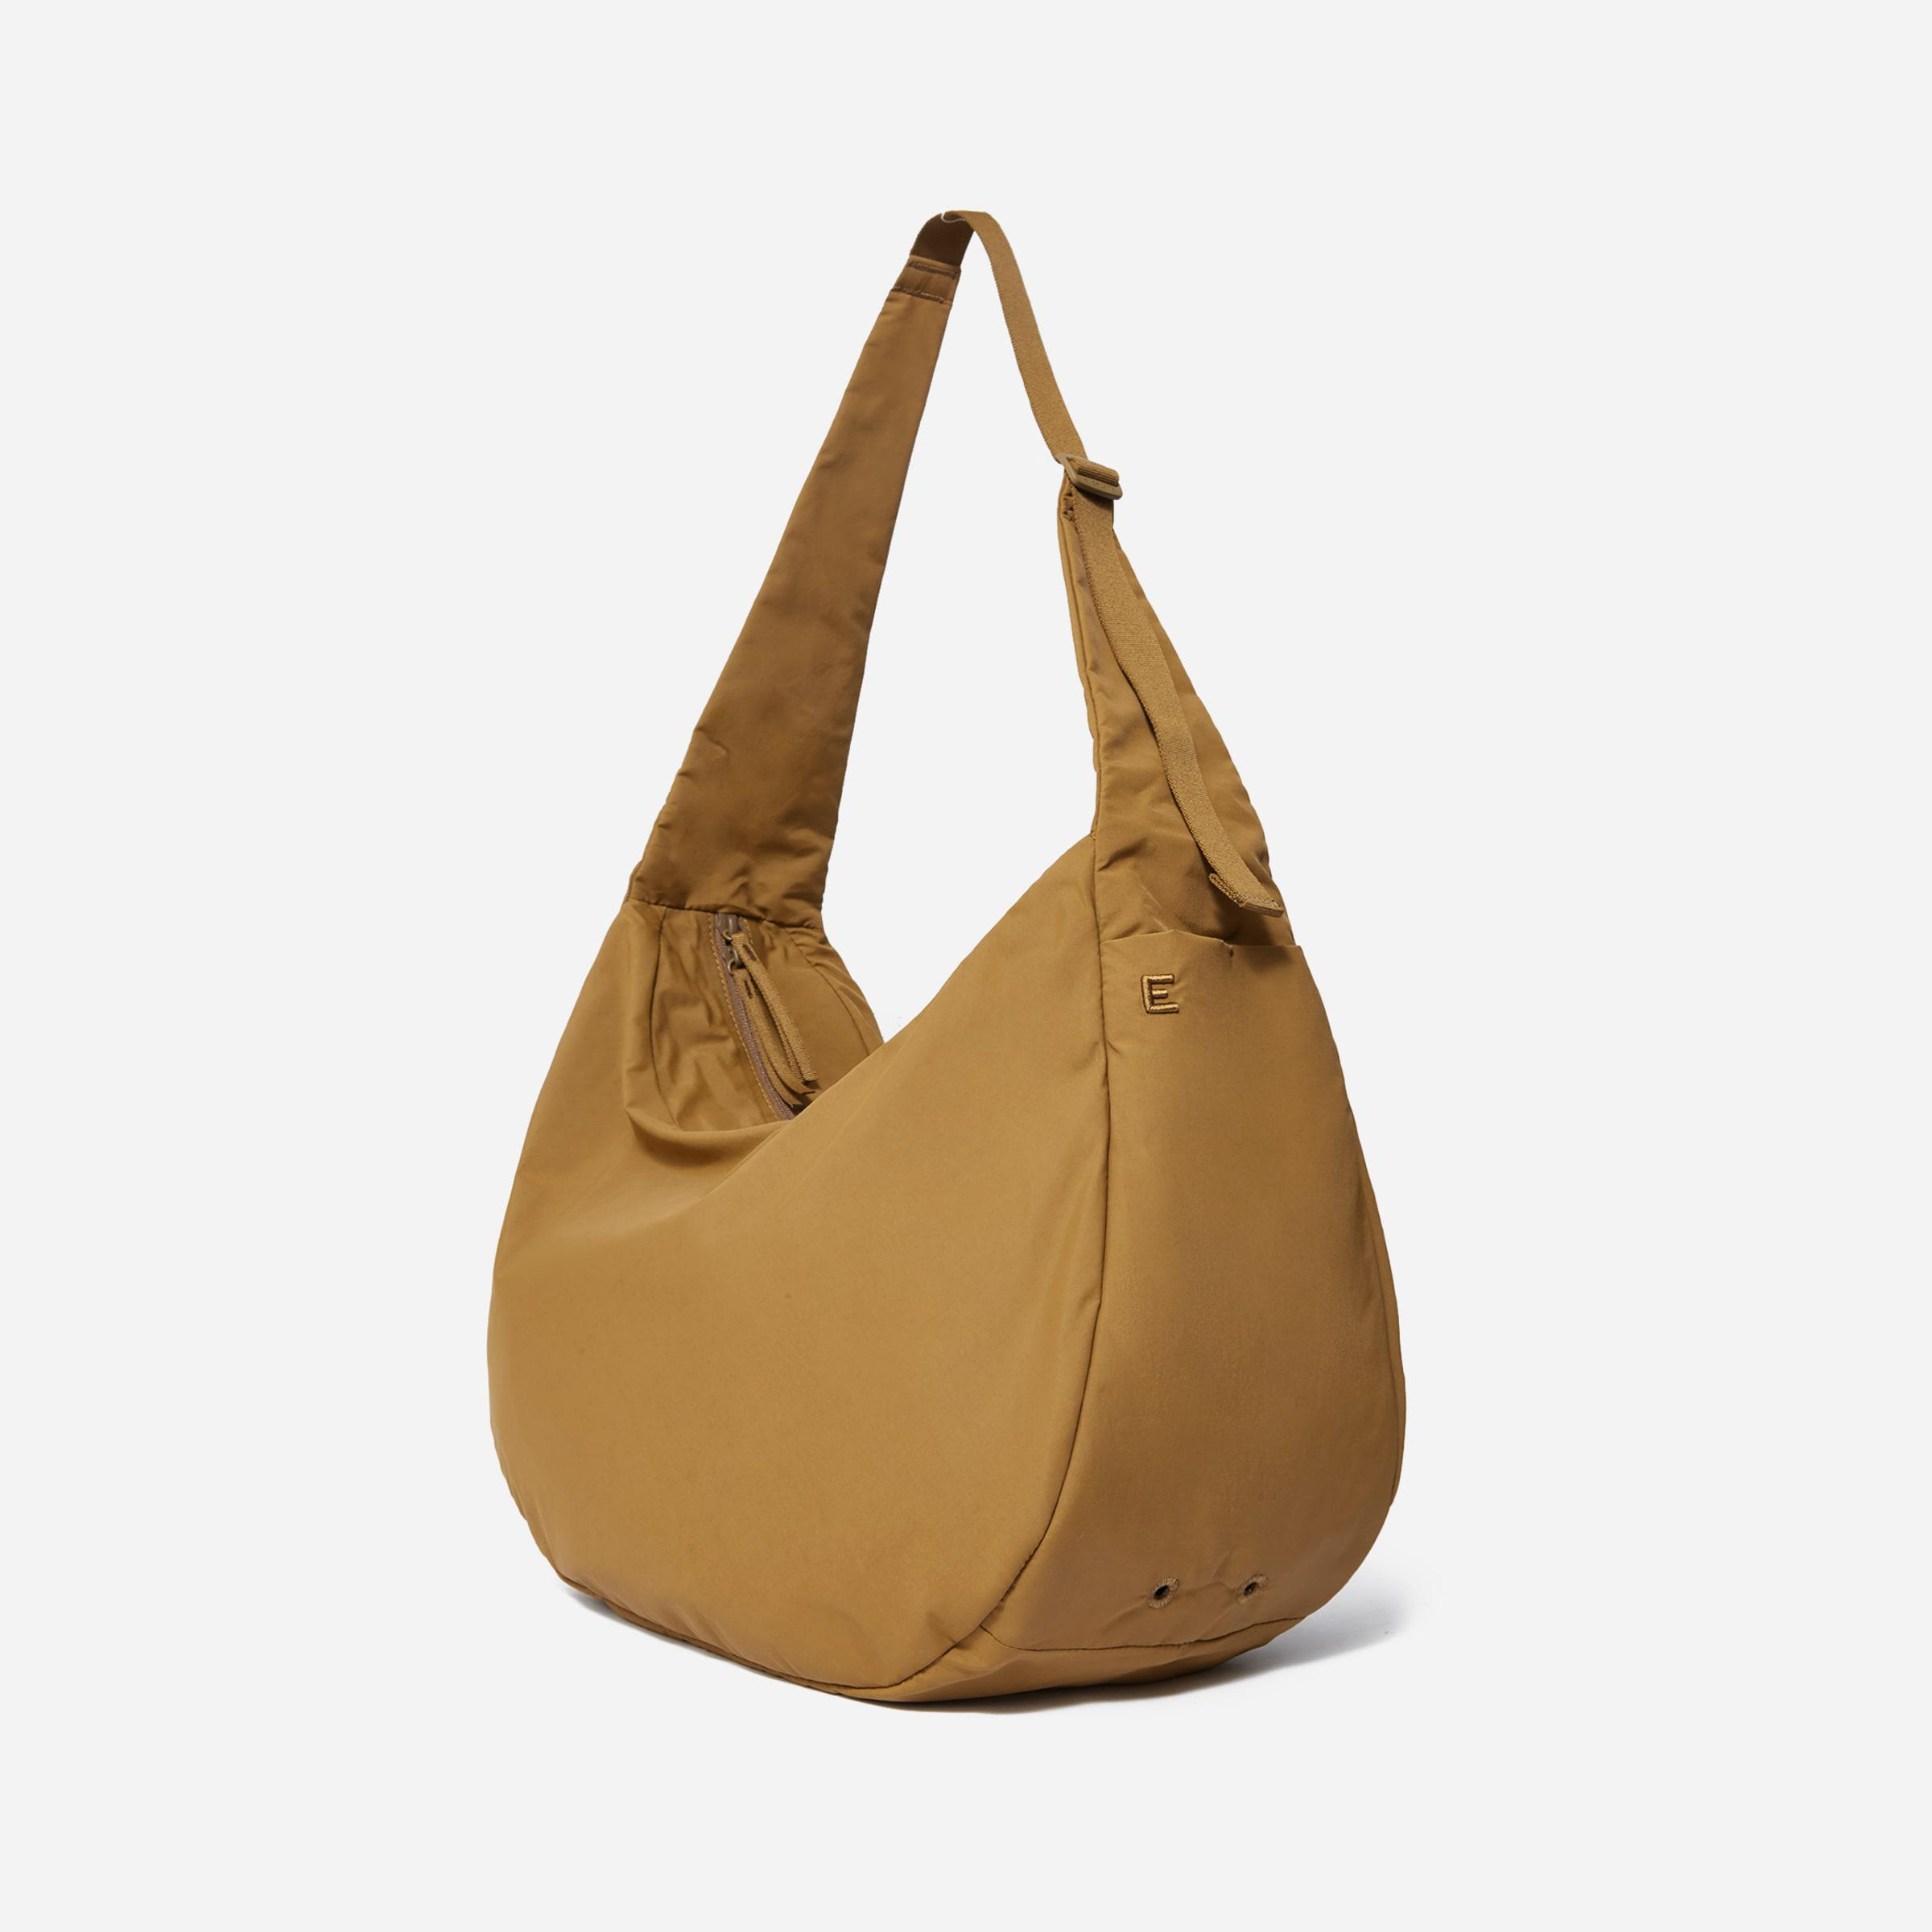 The Oversized Carryall 2